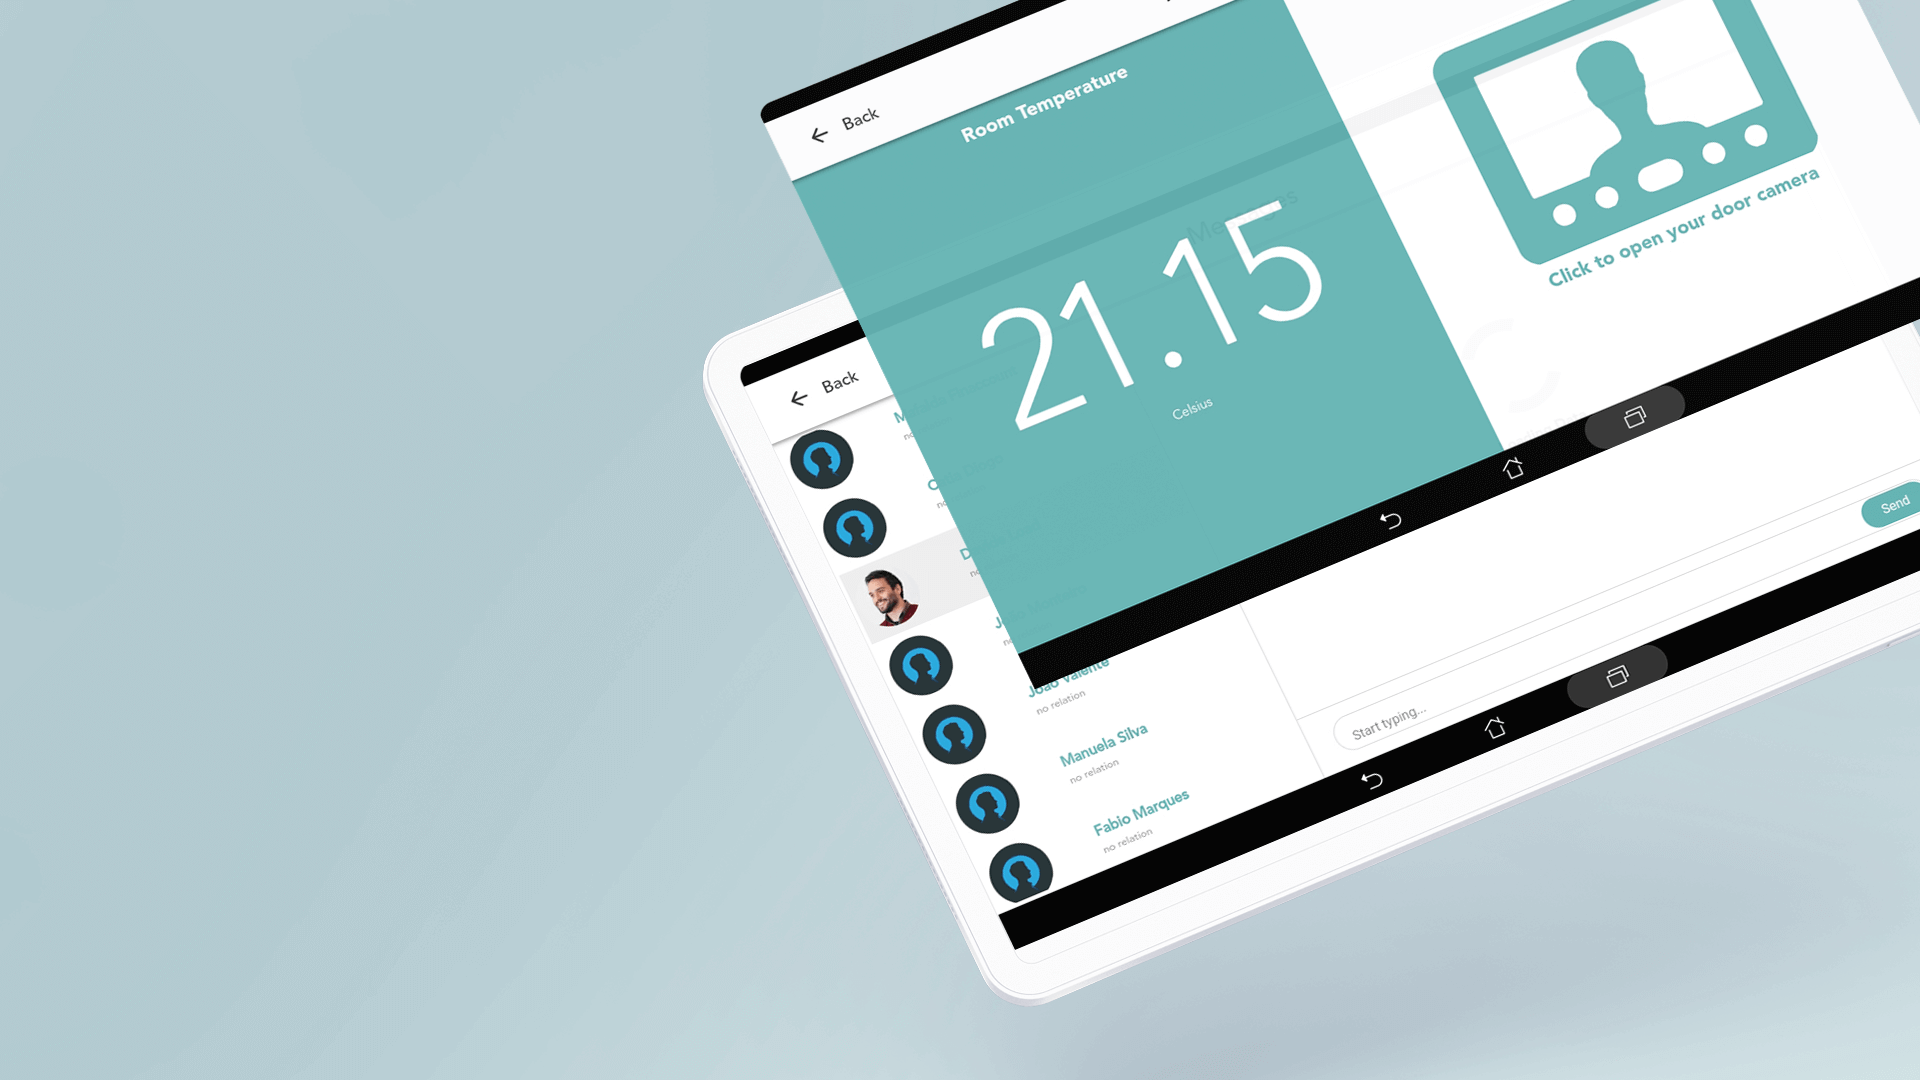 tablet mockup of vizier project for the elderly